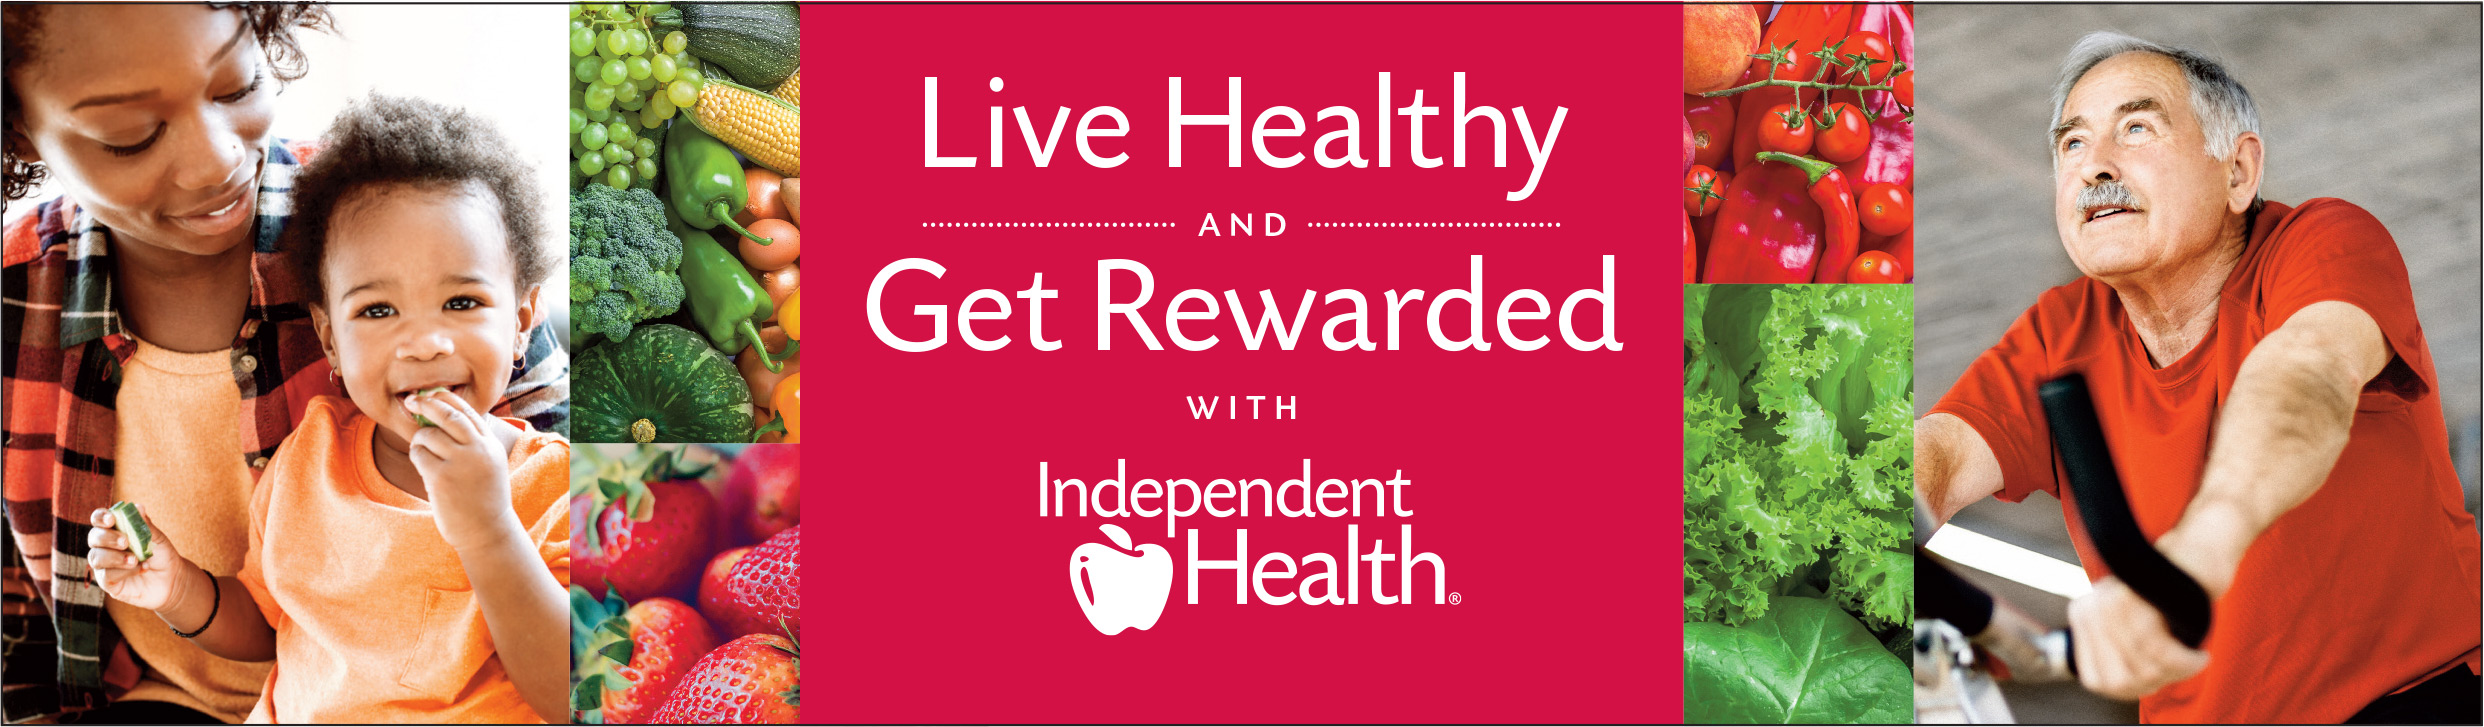 Independent Health Header